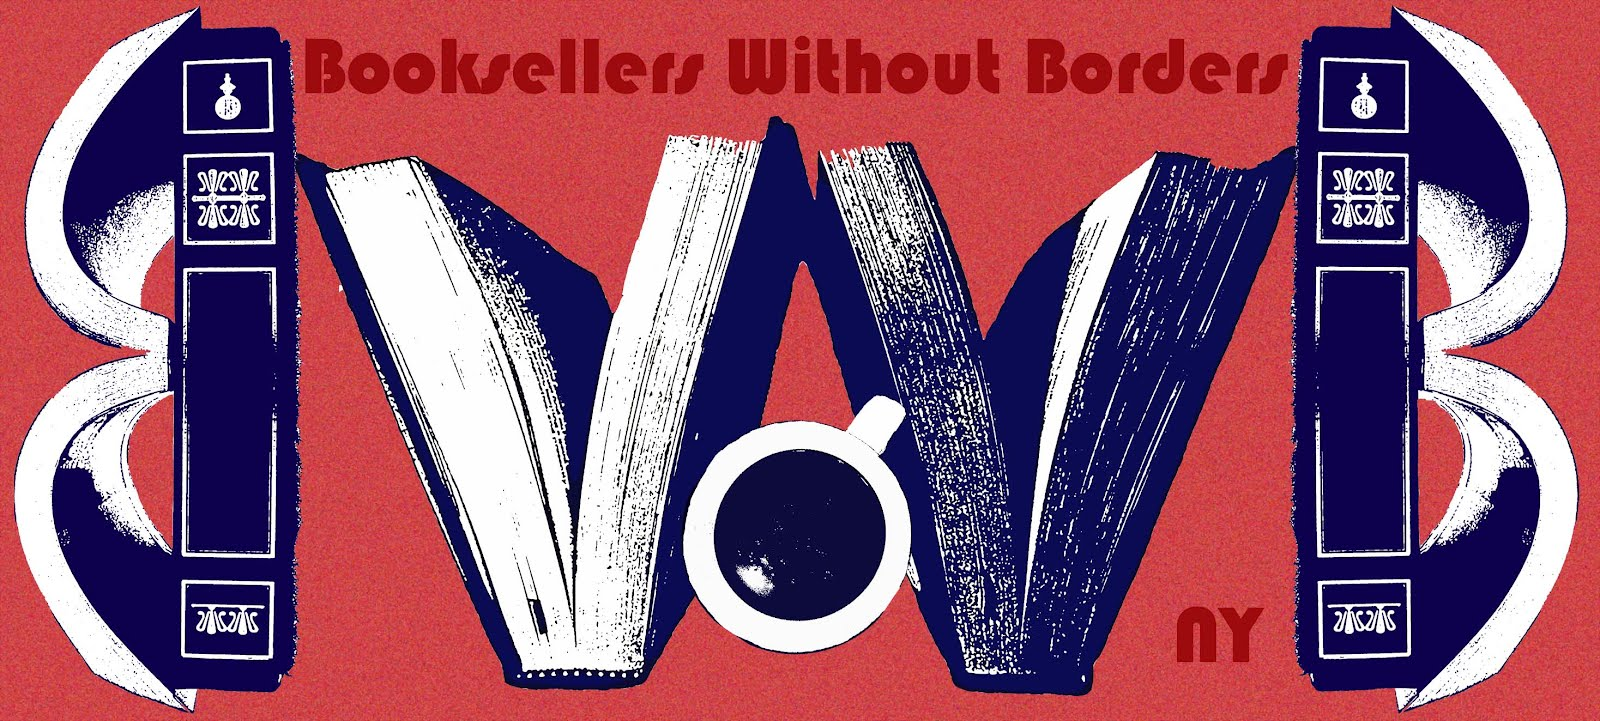 Booksellers Without Borders